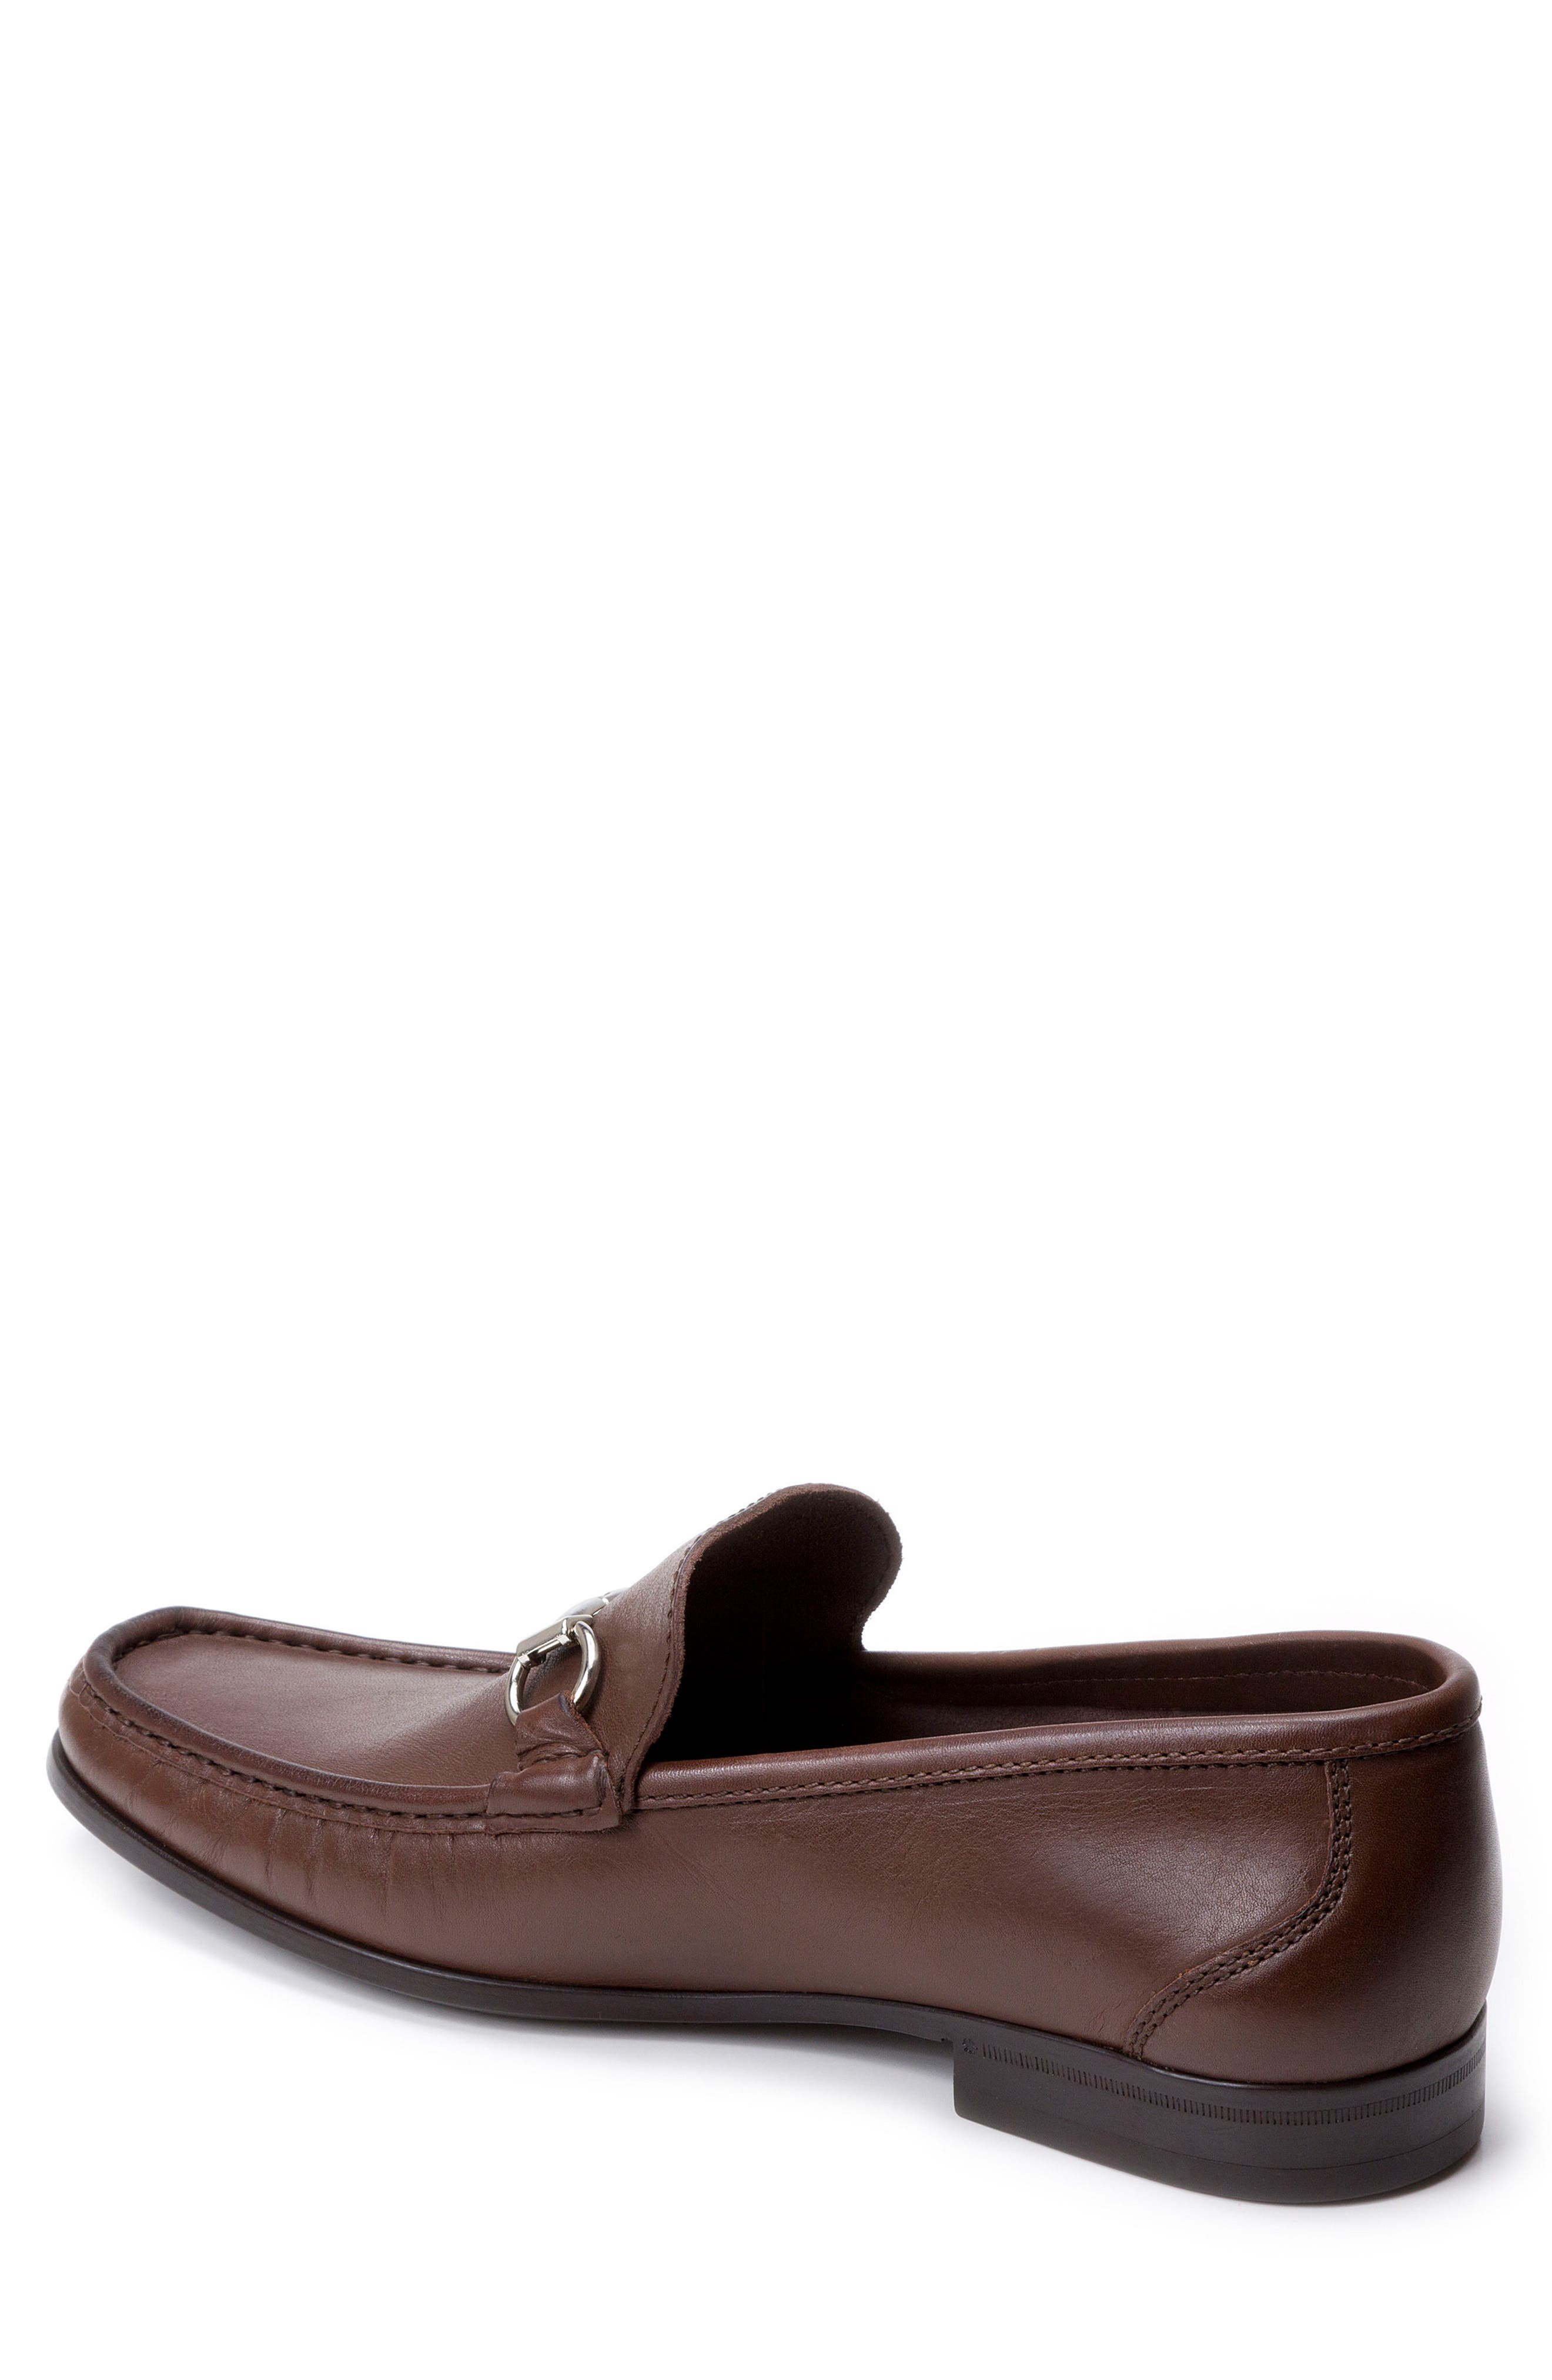 'Malibu' Suede Bit Loafer,                             Alternate thumbnail 2, color,                             Brown Leather